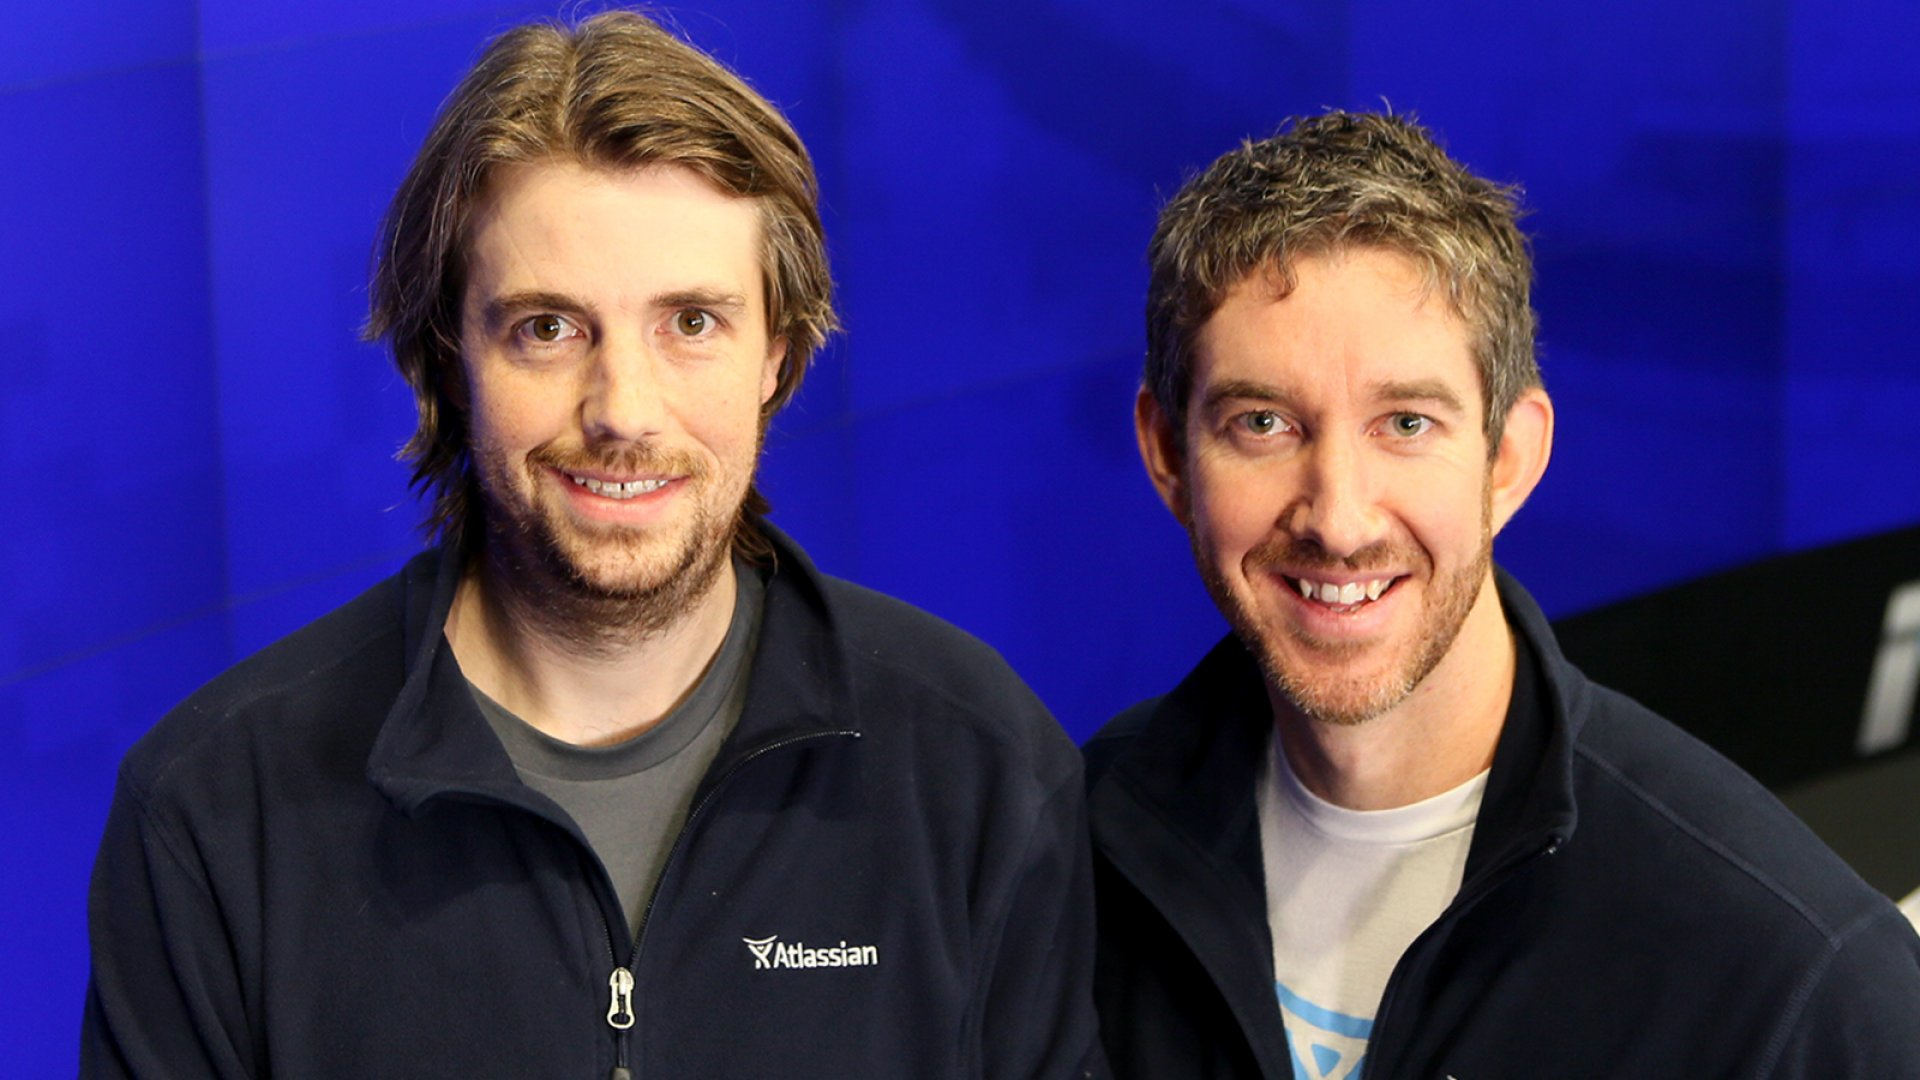 Mike Cannon-Brookes and Scott Farquhar, co-founders and co-CEOs of Atlassian.